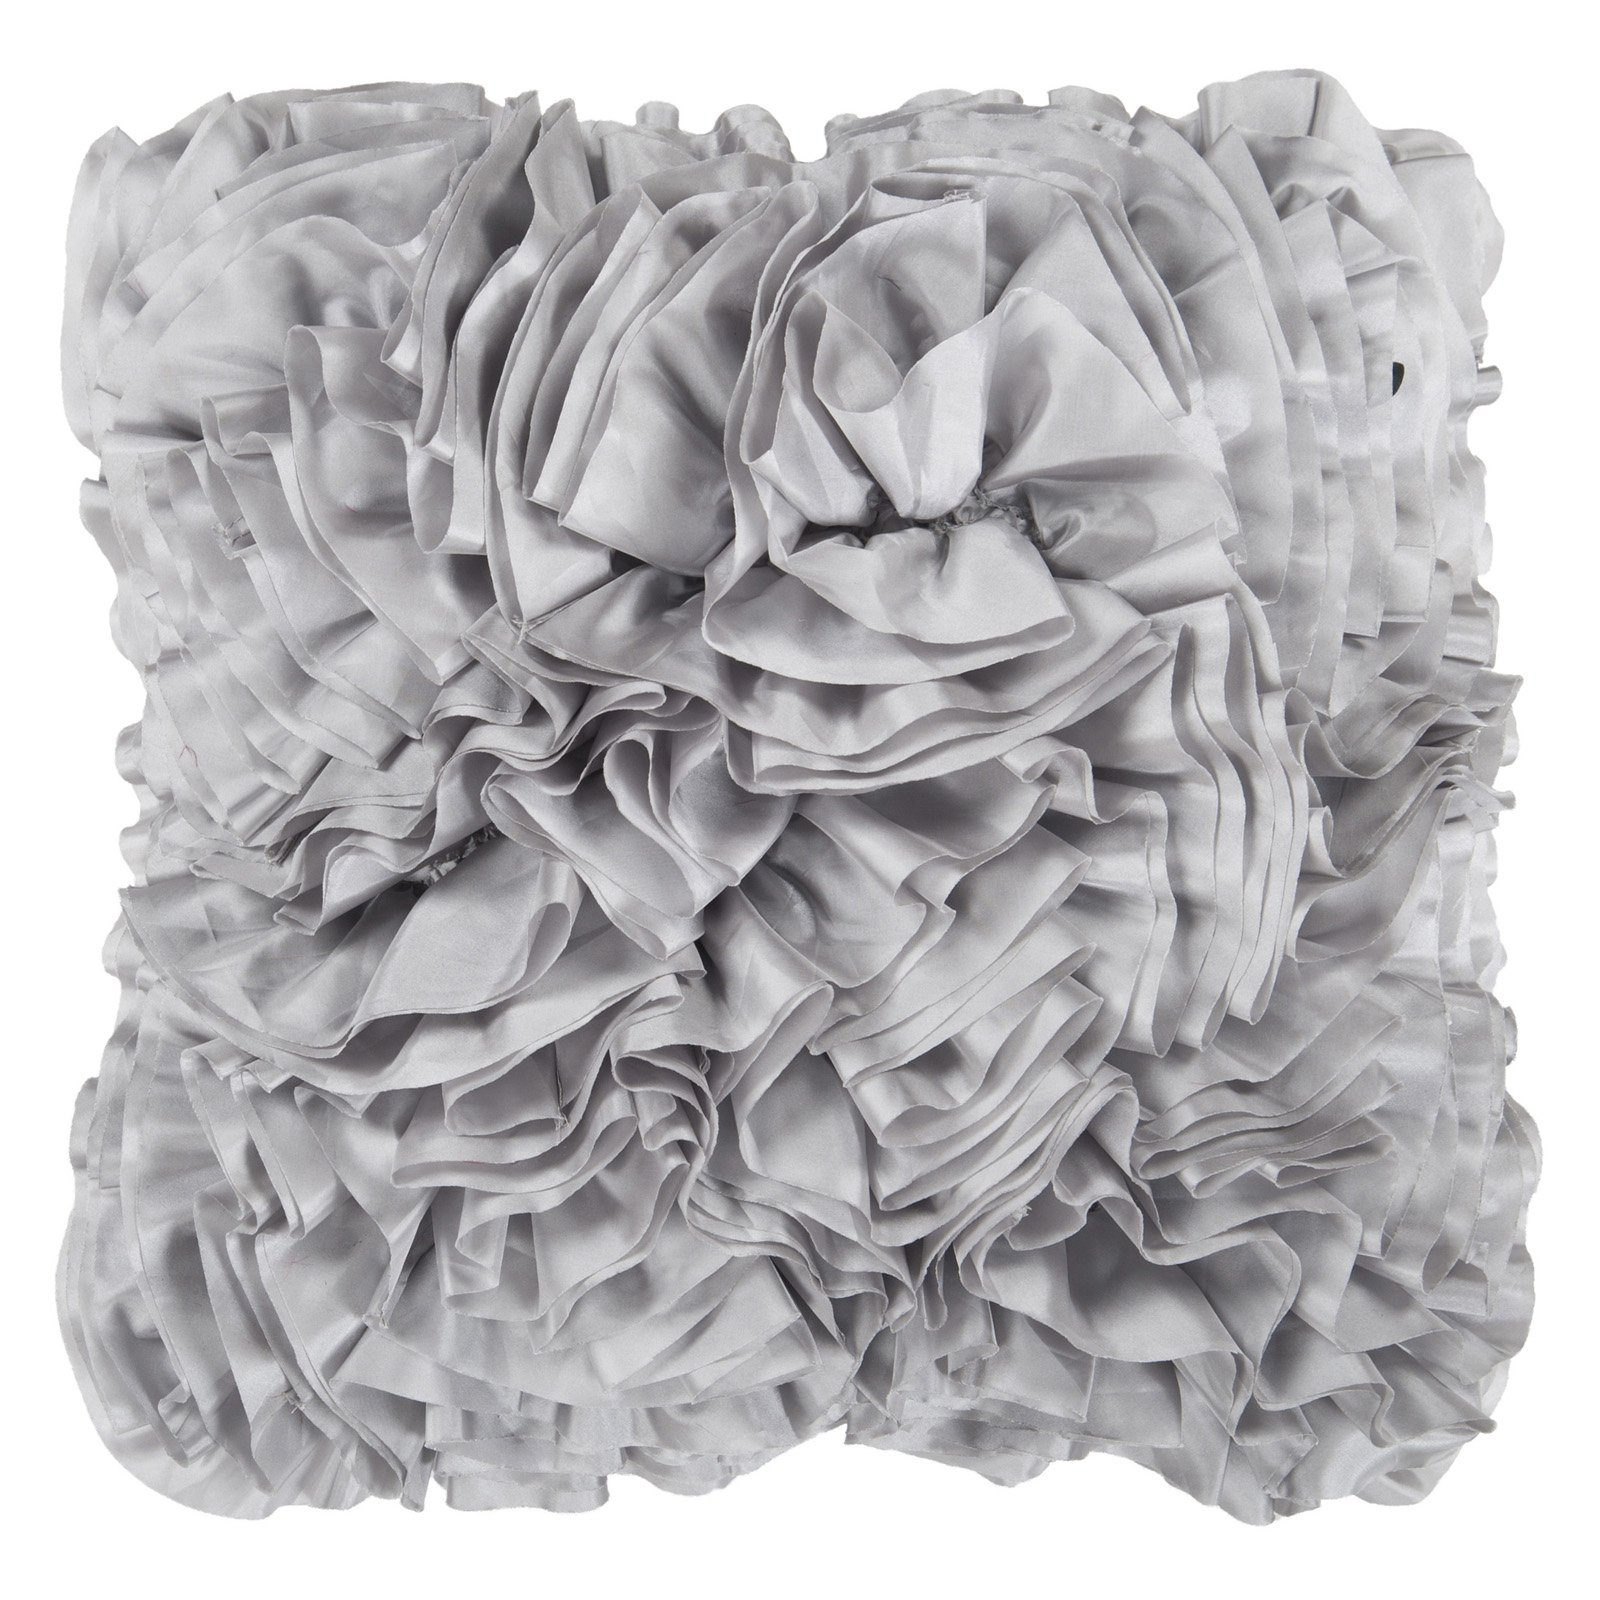 Surya Ruffles Decorative Pillow - Light Gray